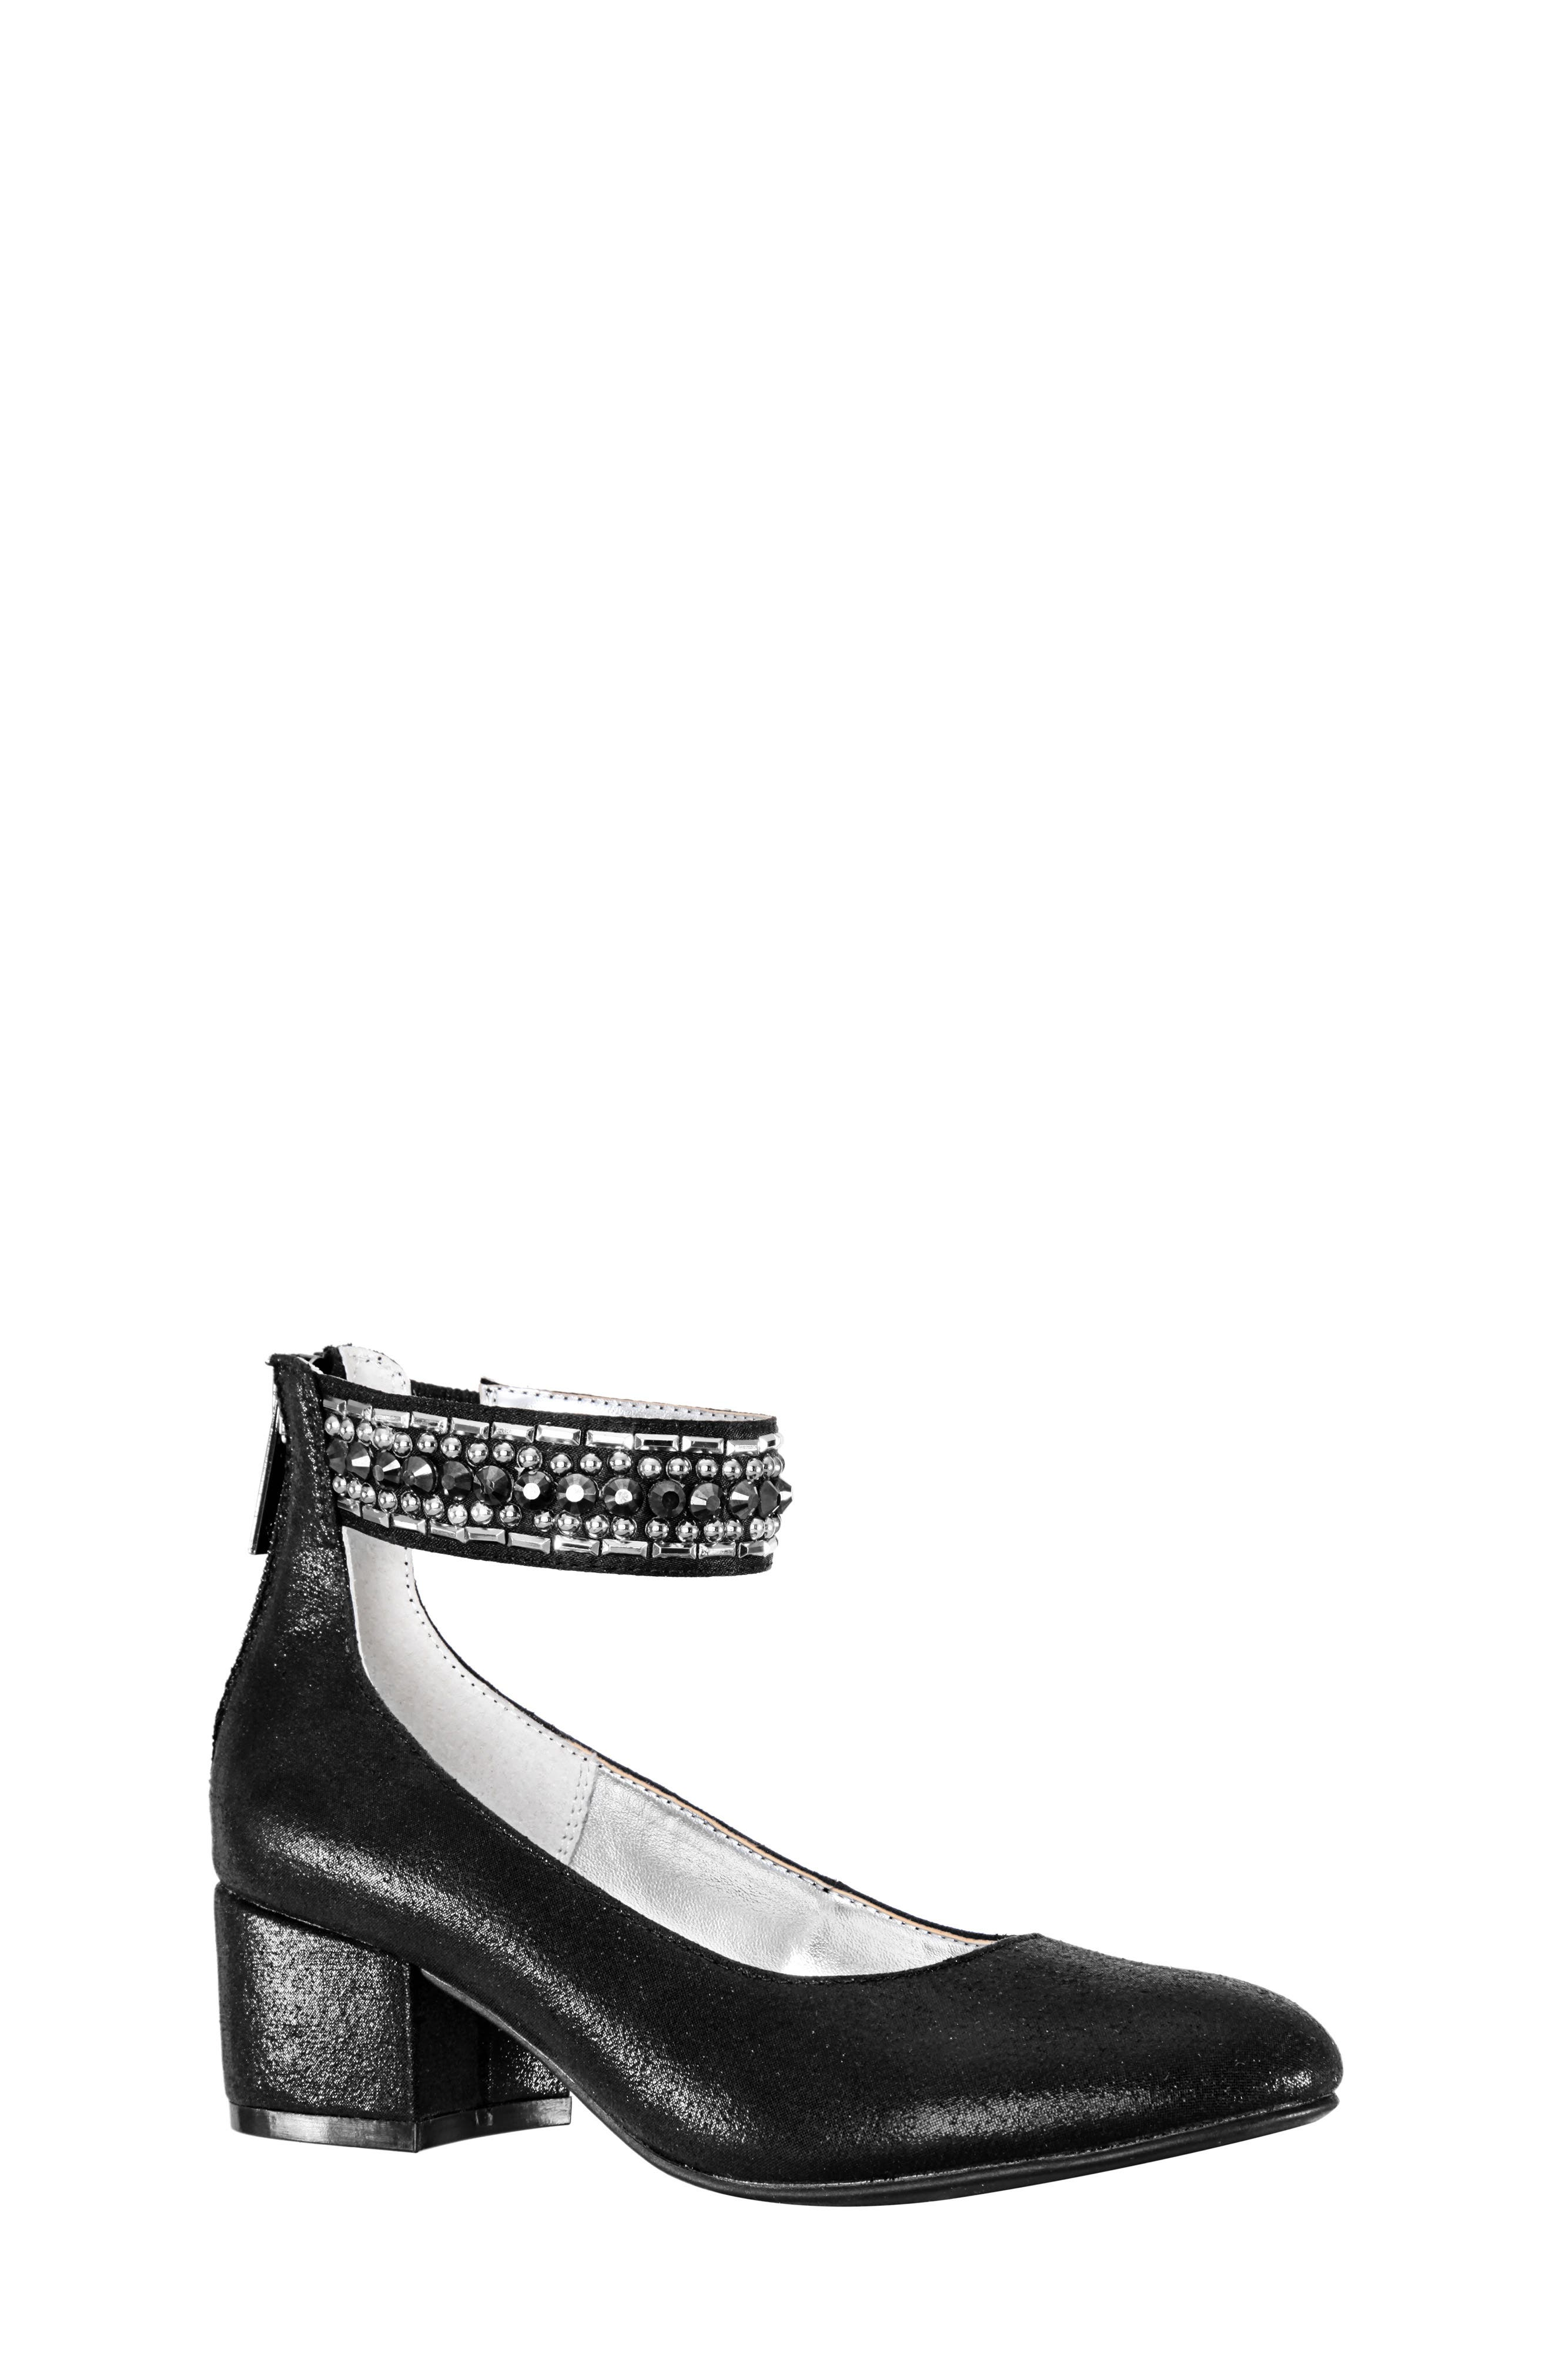 Charleen Ankle Strap Pump,                         Main,                         color, BLACK SHIMMER FABRIC